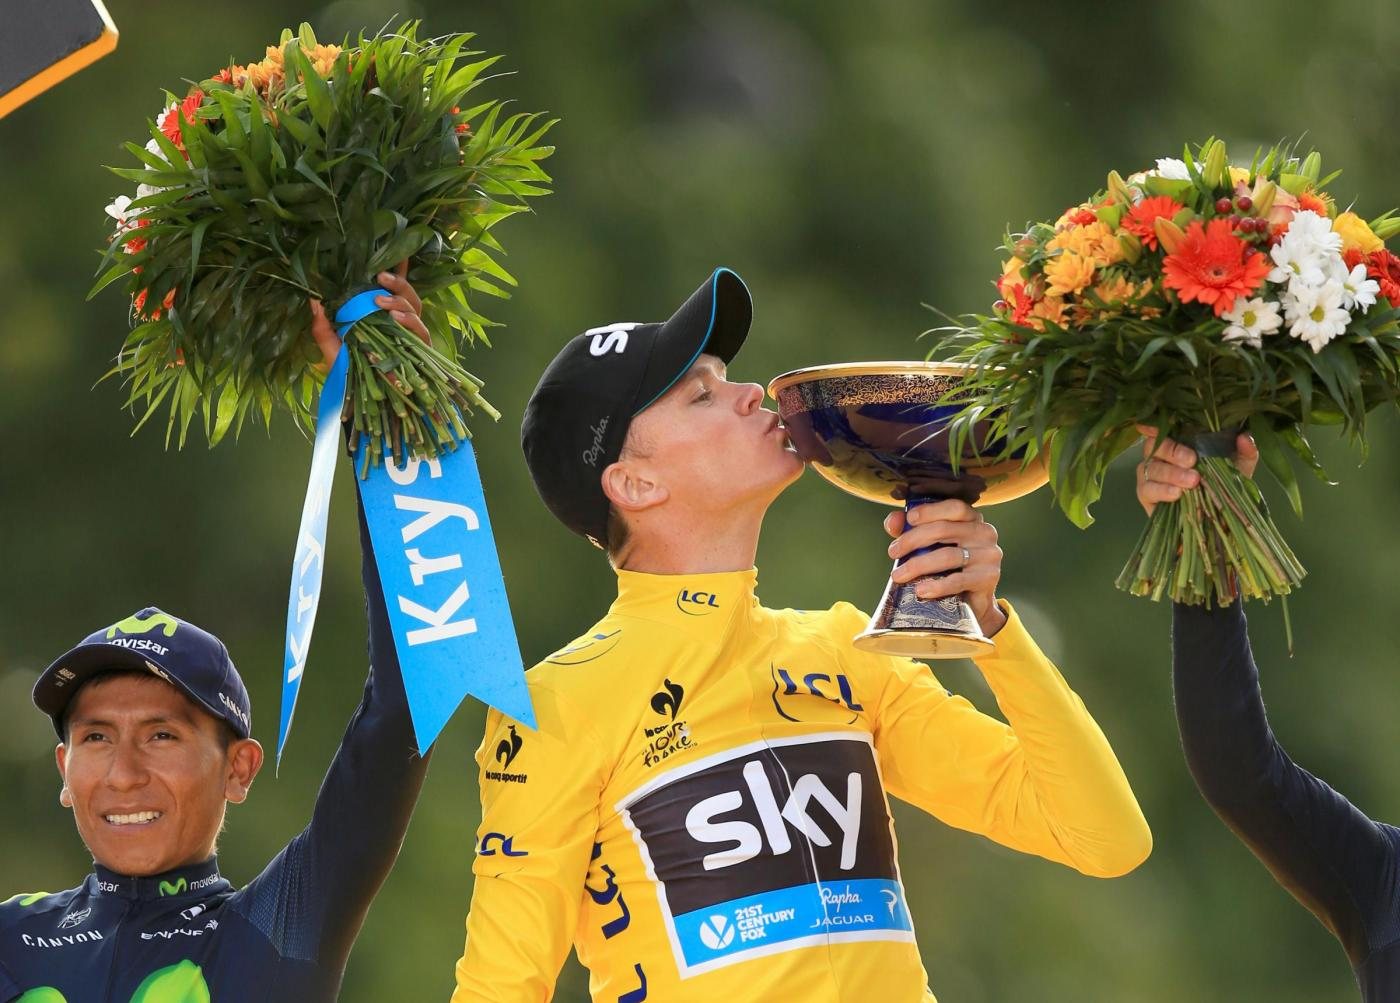 Chris Froome vittoria finale